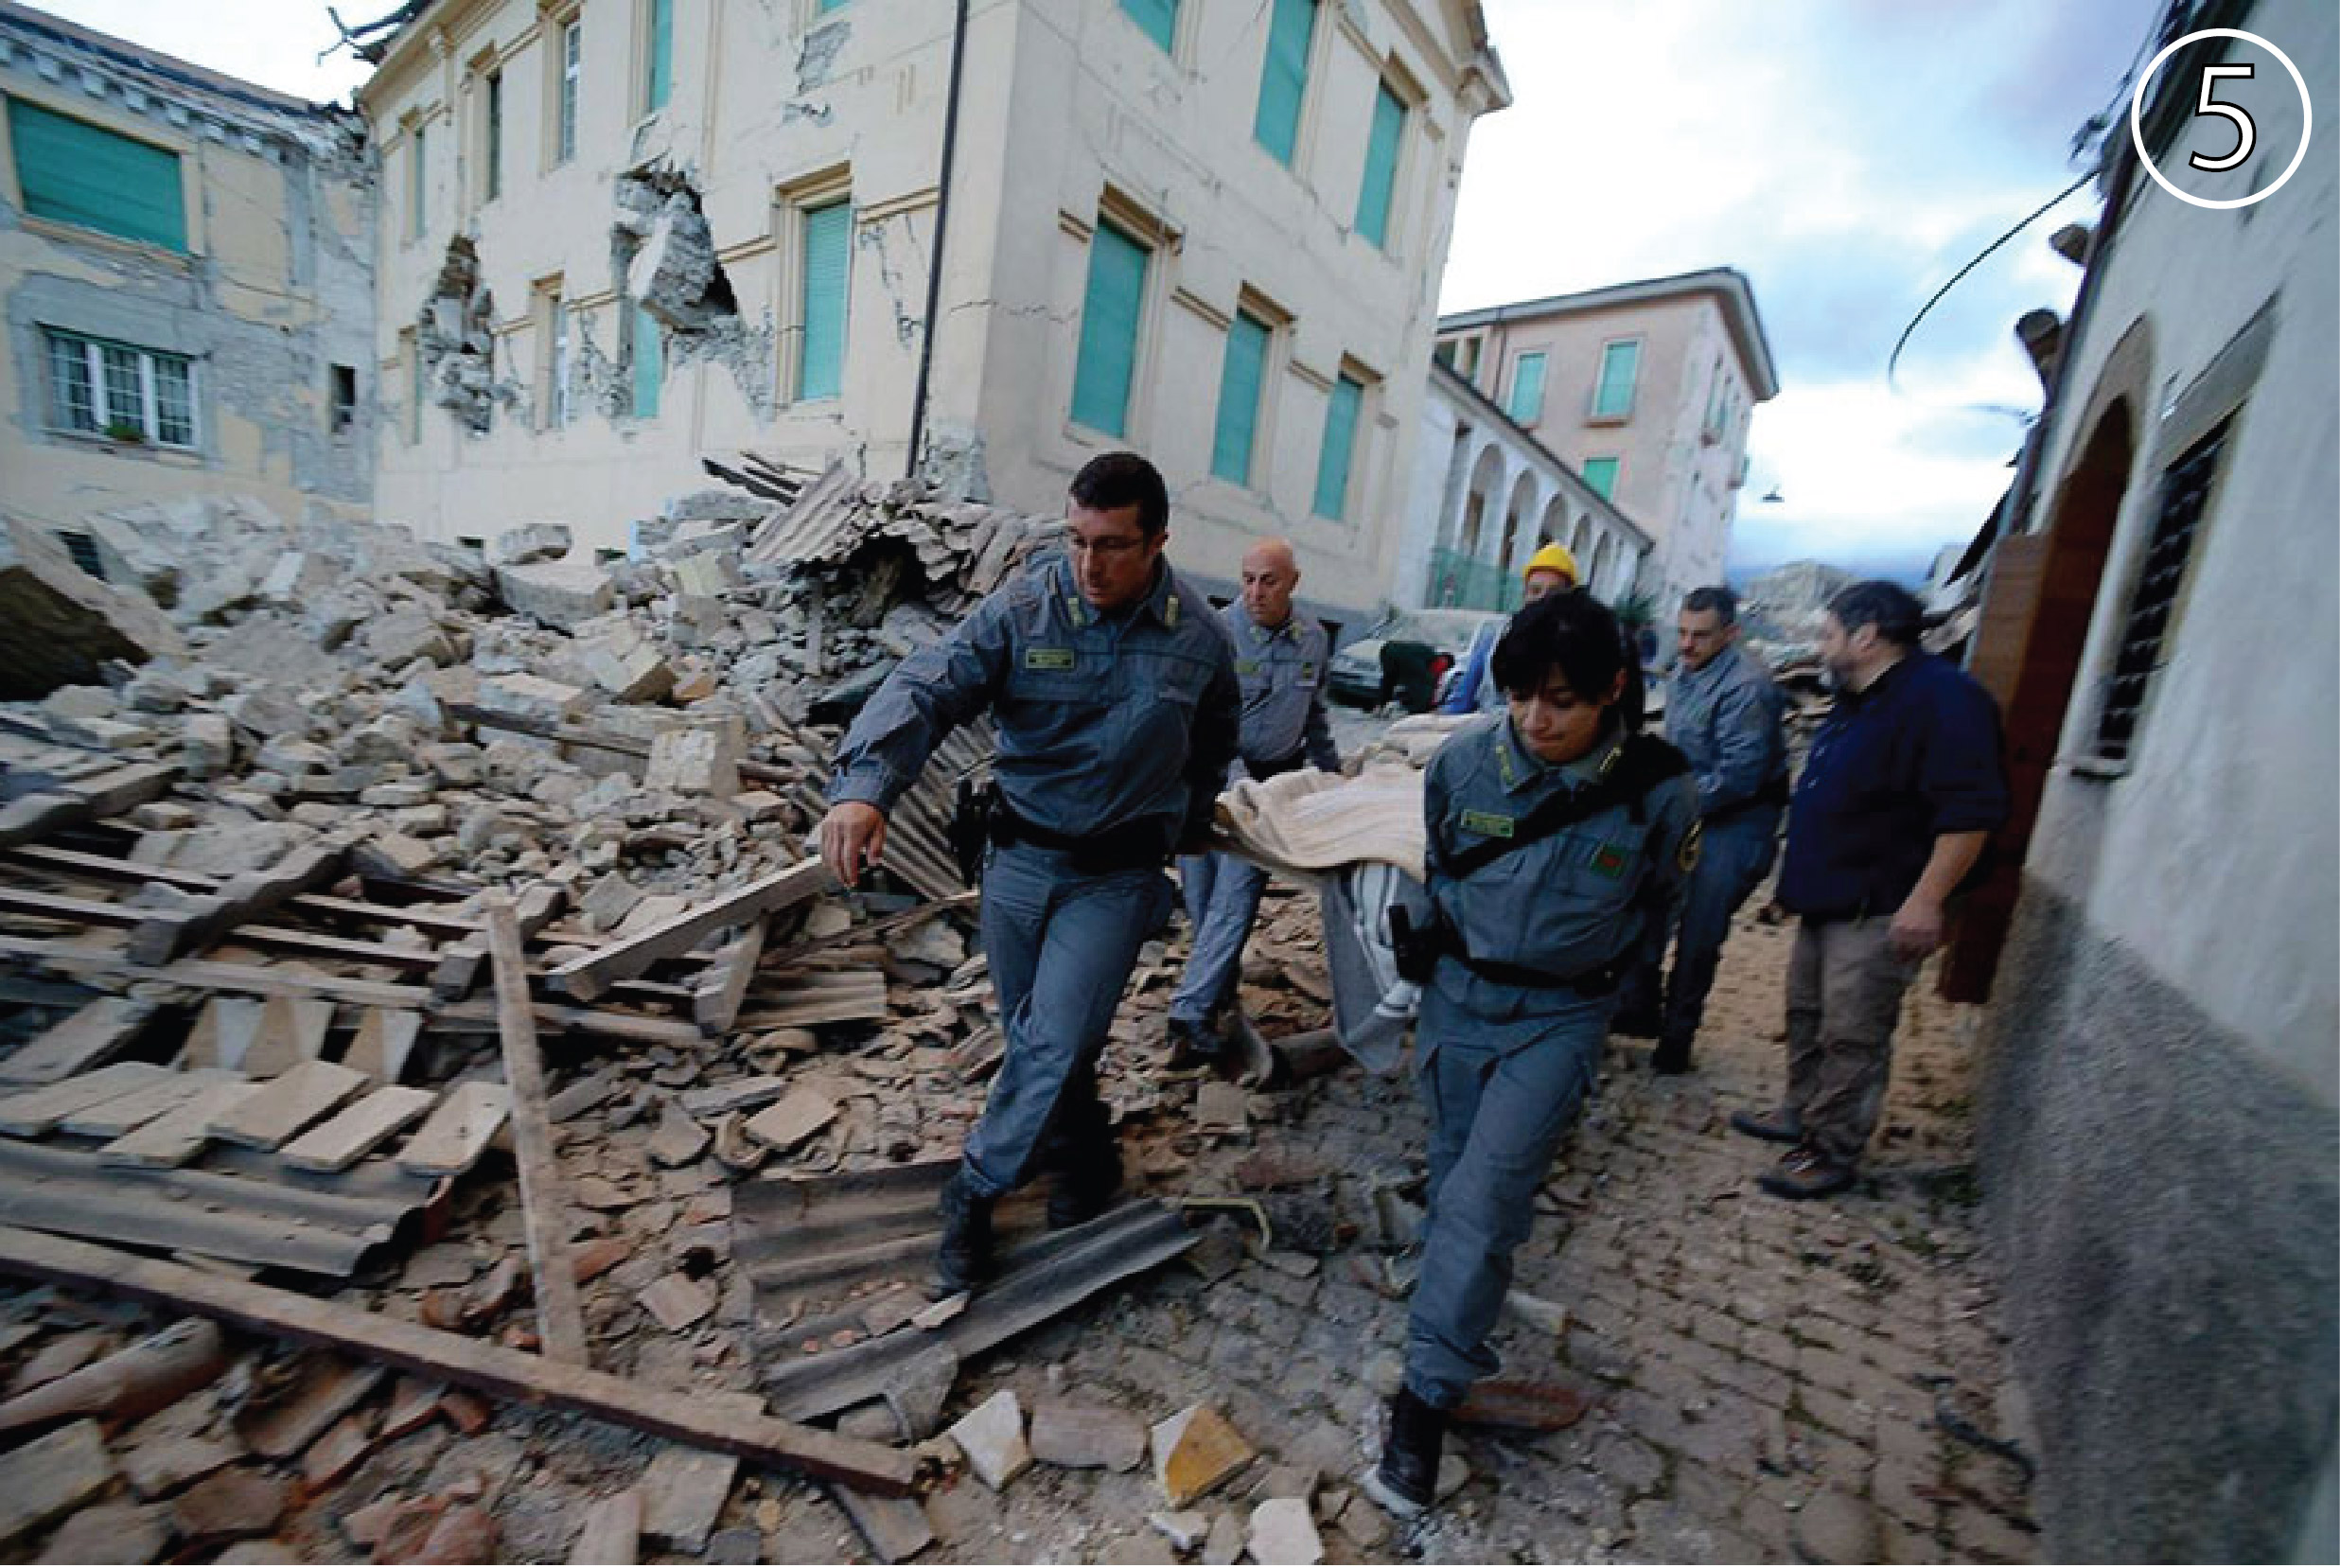 Damage from the Italy earthquake at Amatrice.